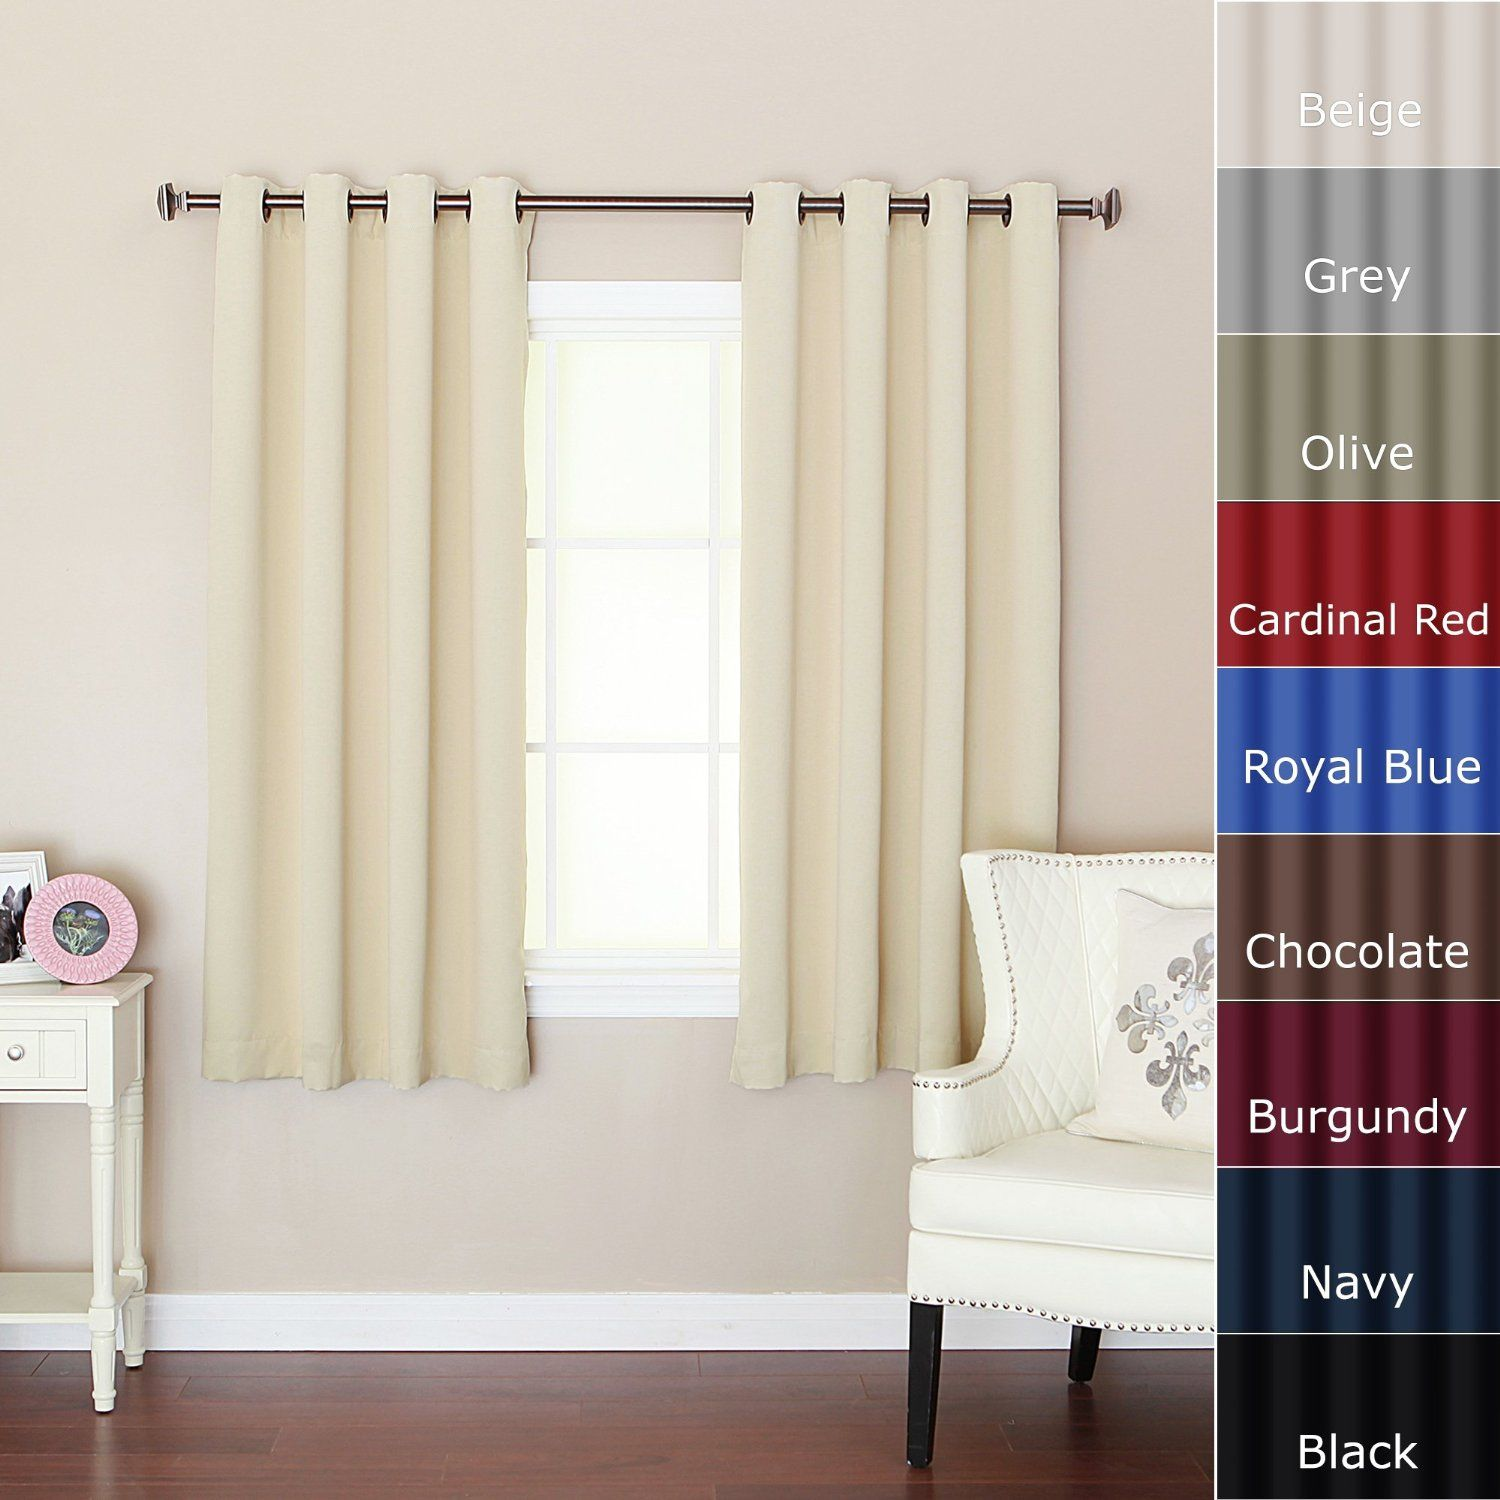 shade window curtains blackout x insulated l curtain rod w bathroom com platinum up amazon for thermal small panel nicetown tie pocket